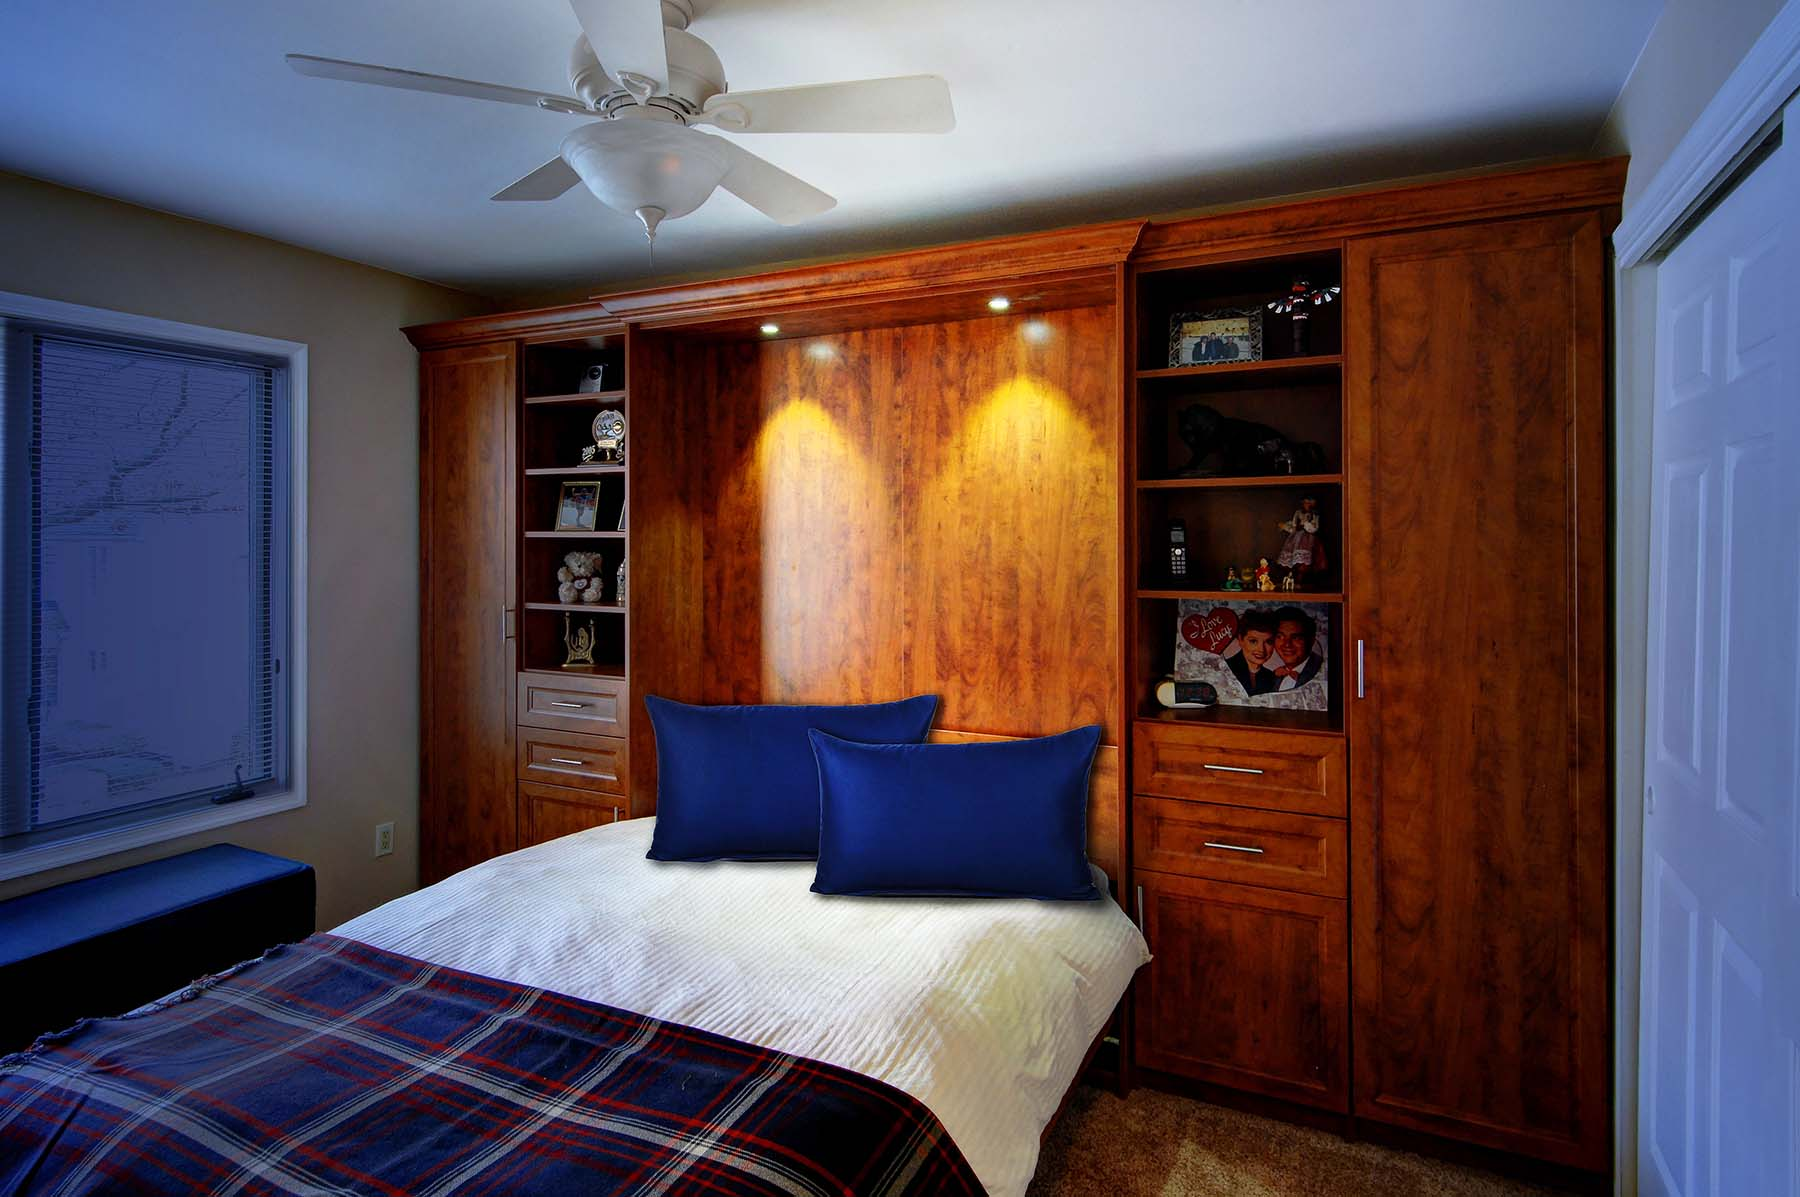 Murphy bed neatly made for guests